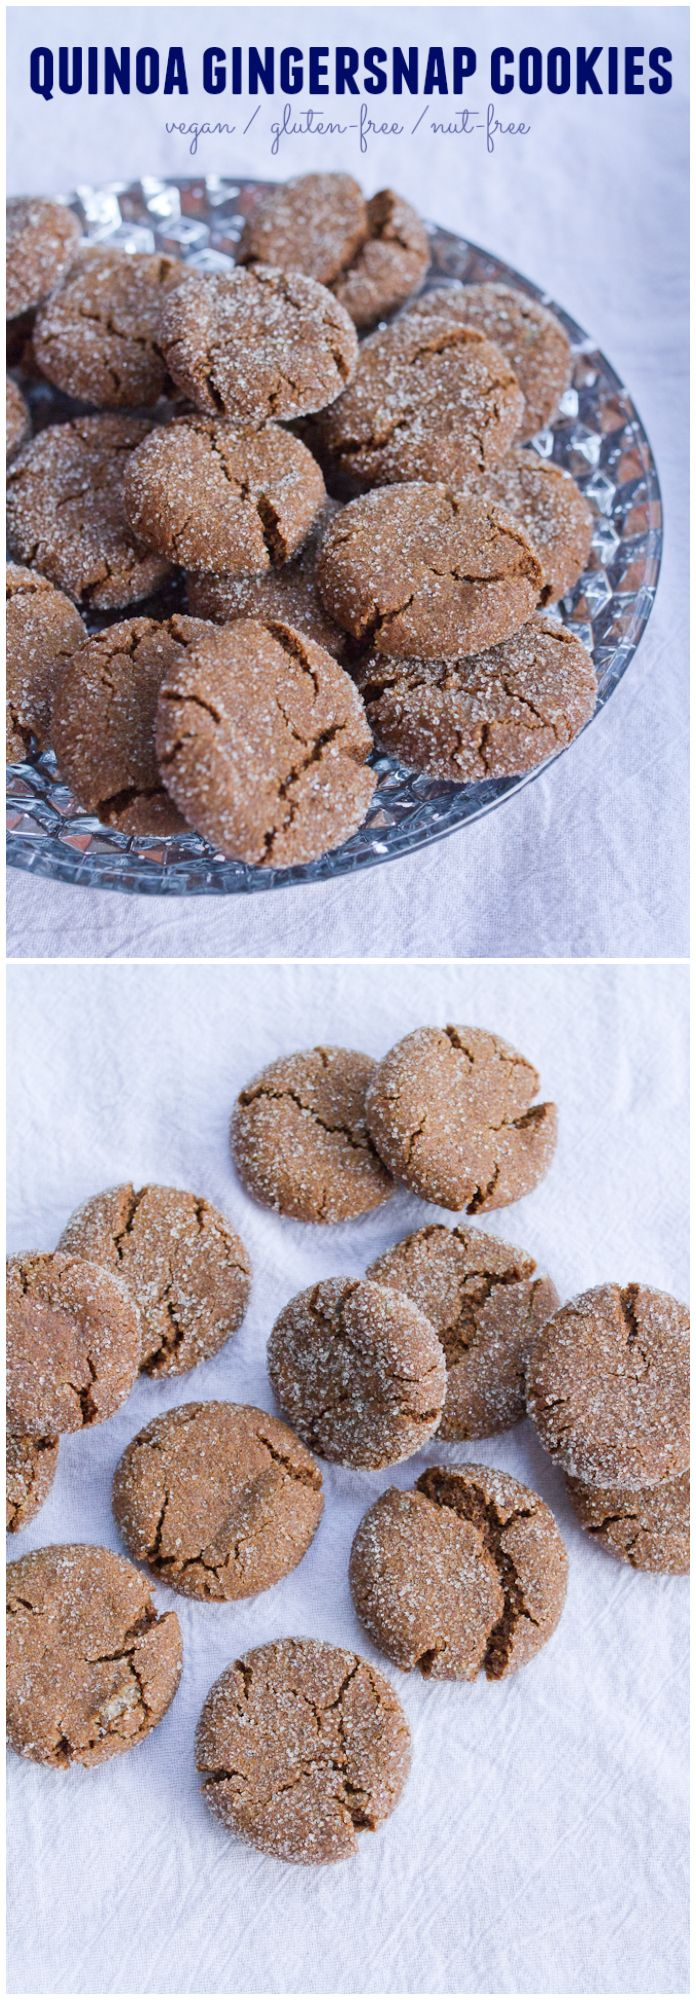 Quinoa Gingersnap Cookies // They're crunchy on the outside, chewy on the inside and taste heavenly. Everyone loves these cookies.